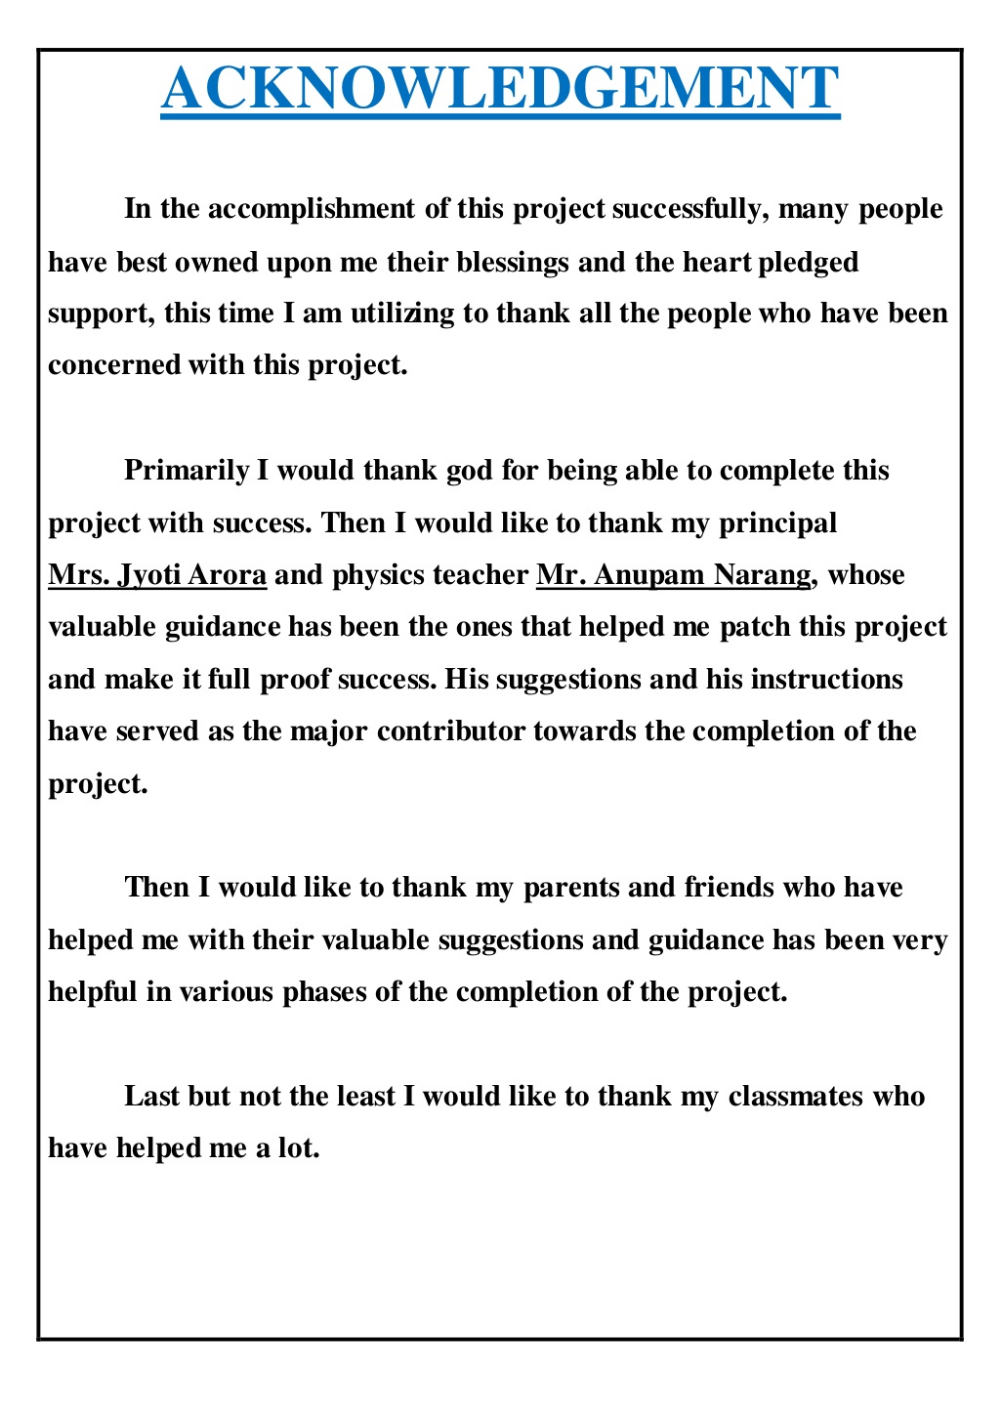 Project Front Page Index Certificate And Acknowledgement Economics Project Acknowledgments For Project Physics Projects